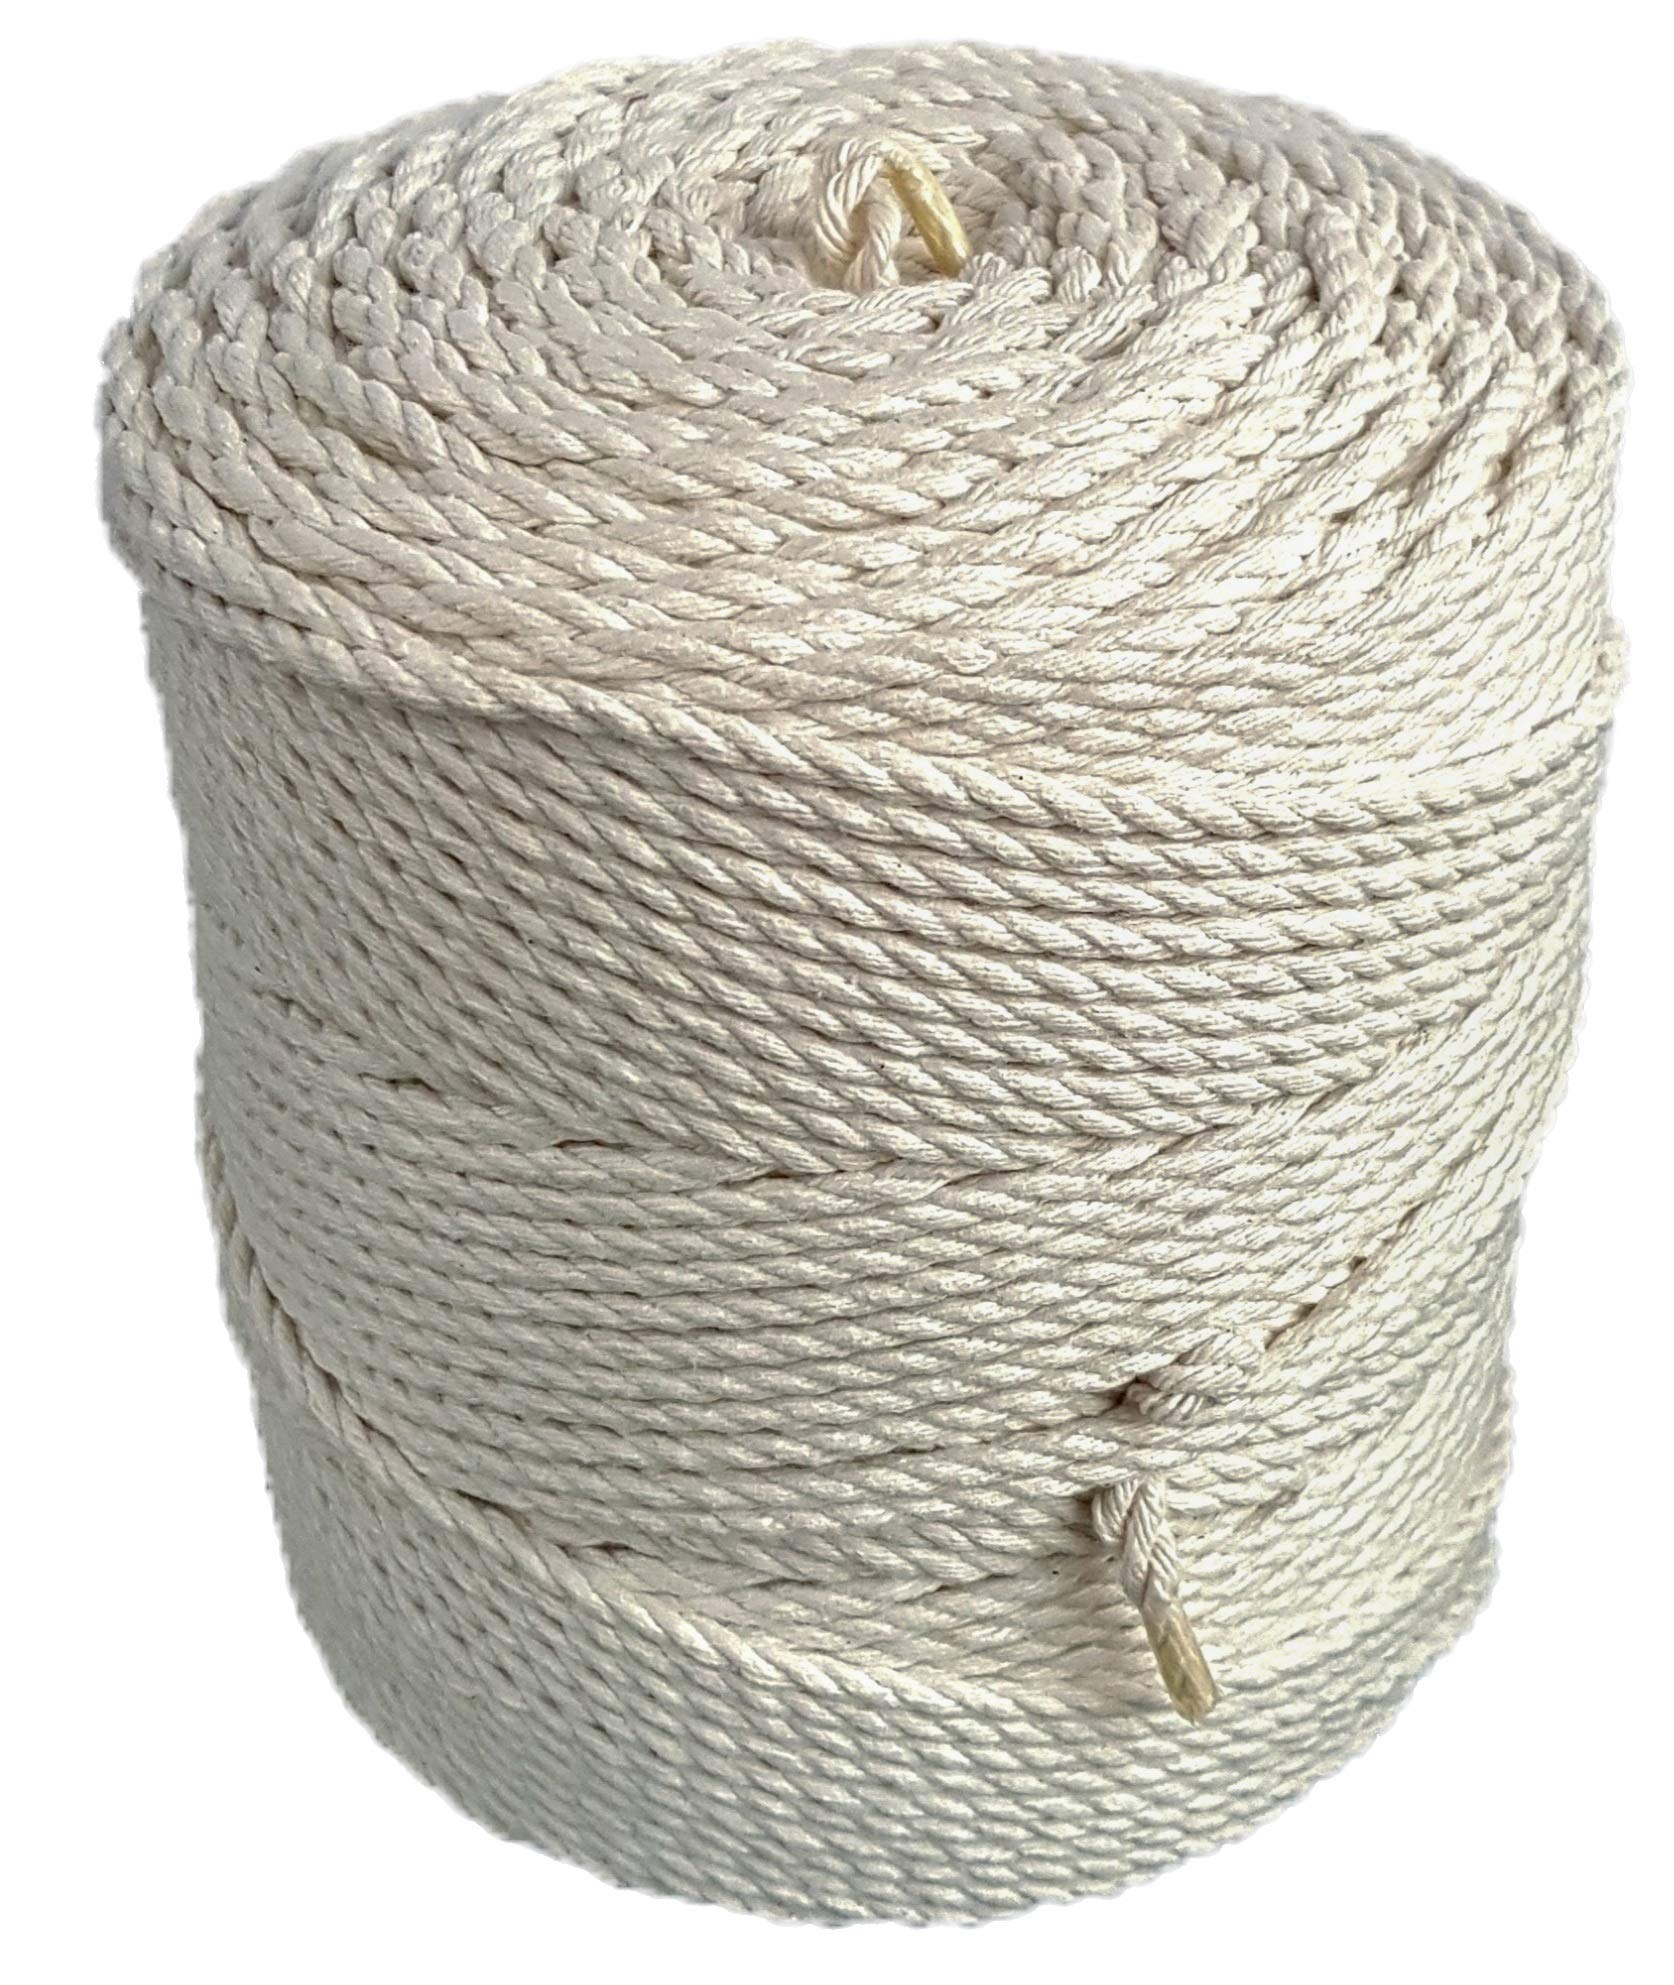 Macrame cord 4mm natural cotton cord 853 feet macrame rope 284 yd. cotton rope (4mm x 260m (about 284 yd.)) by MB Cordas (Image #2)